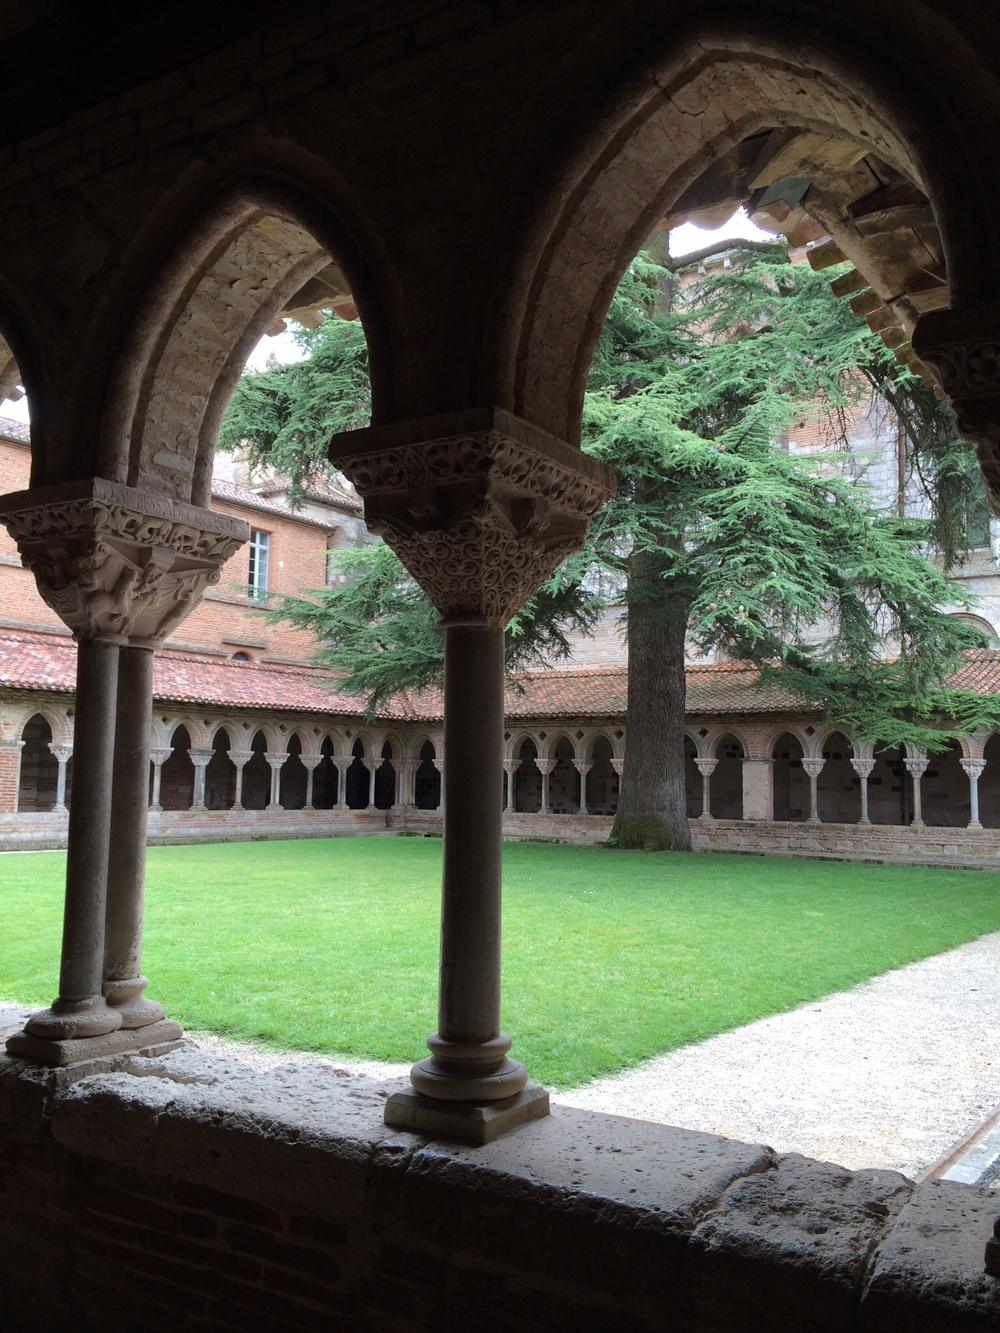 This is one image of the cloister.